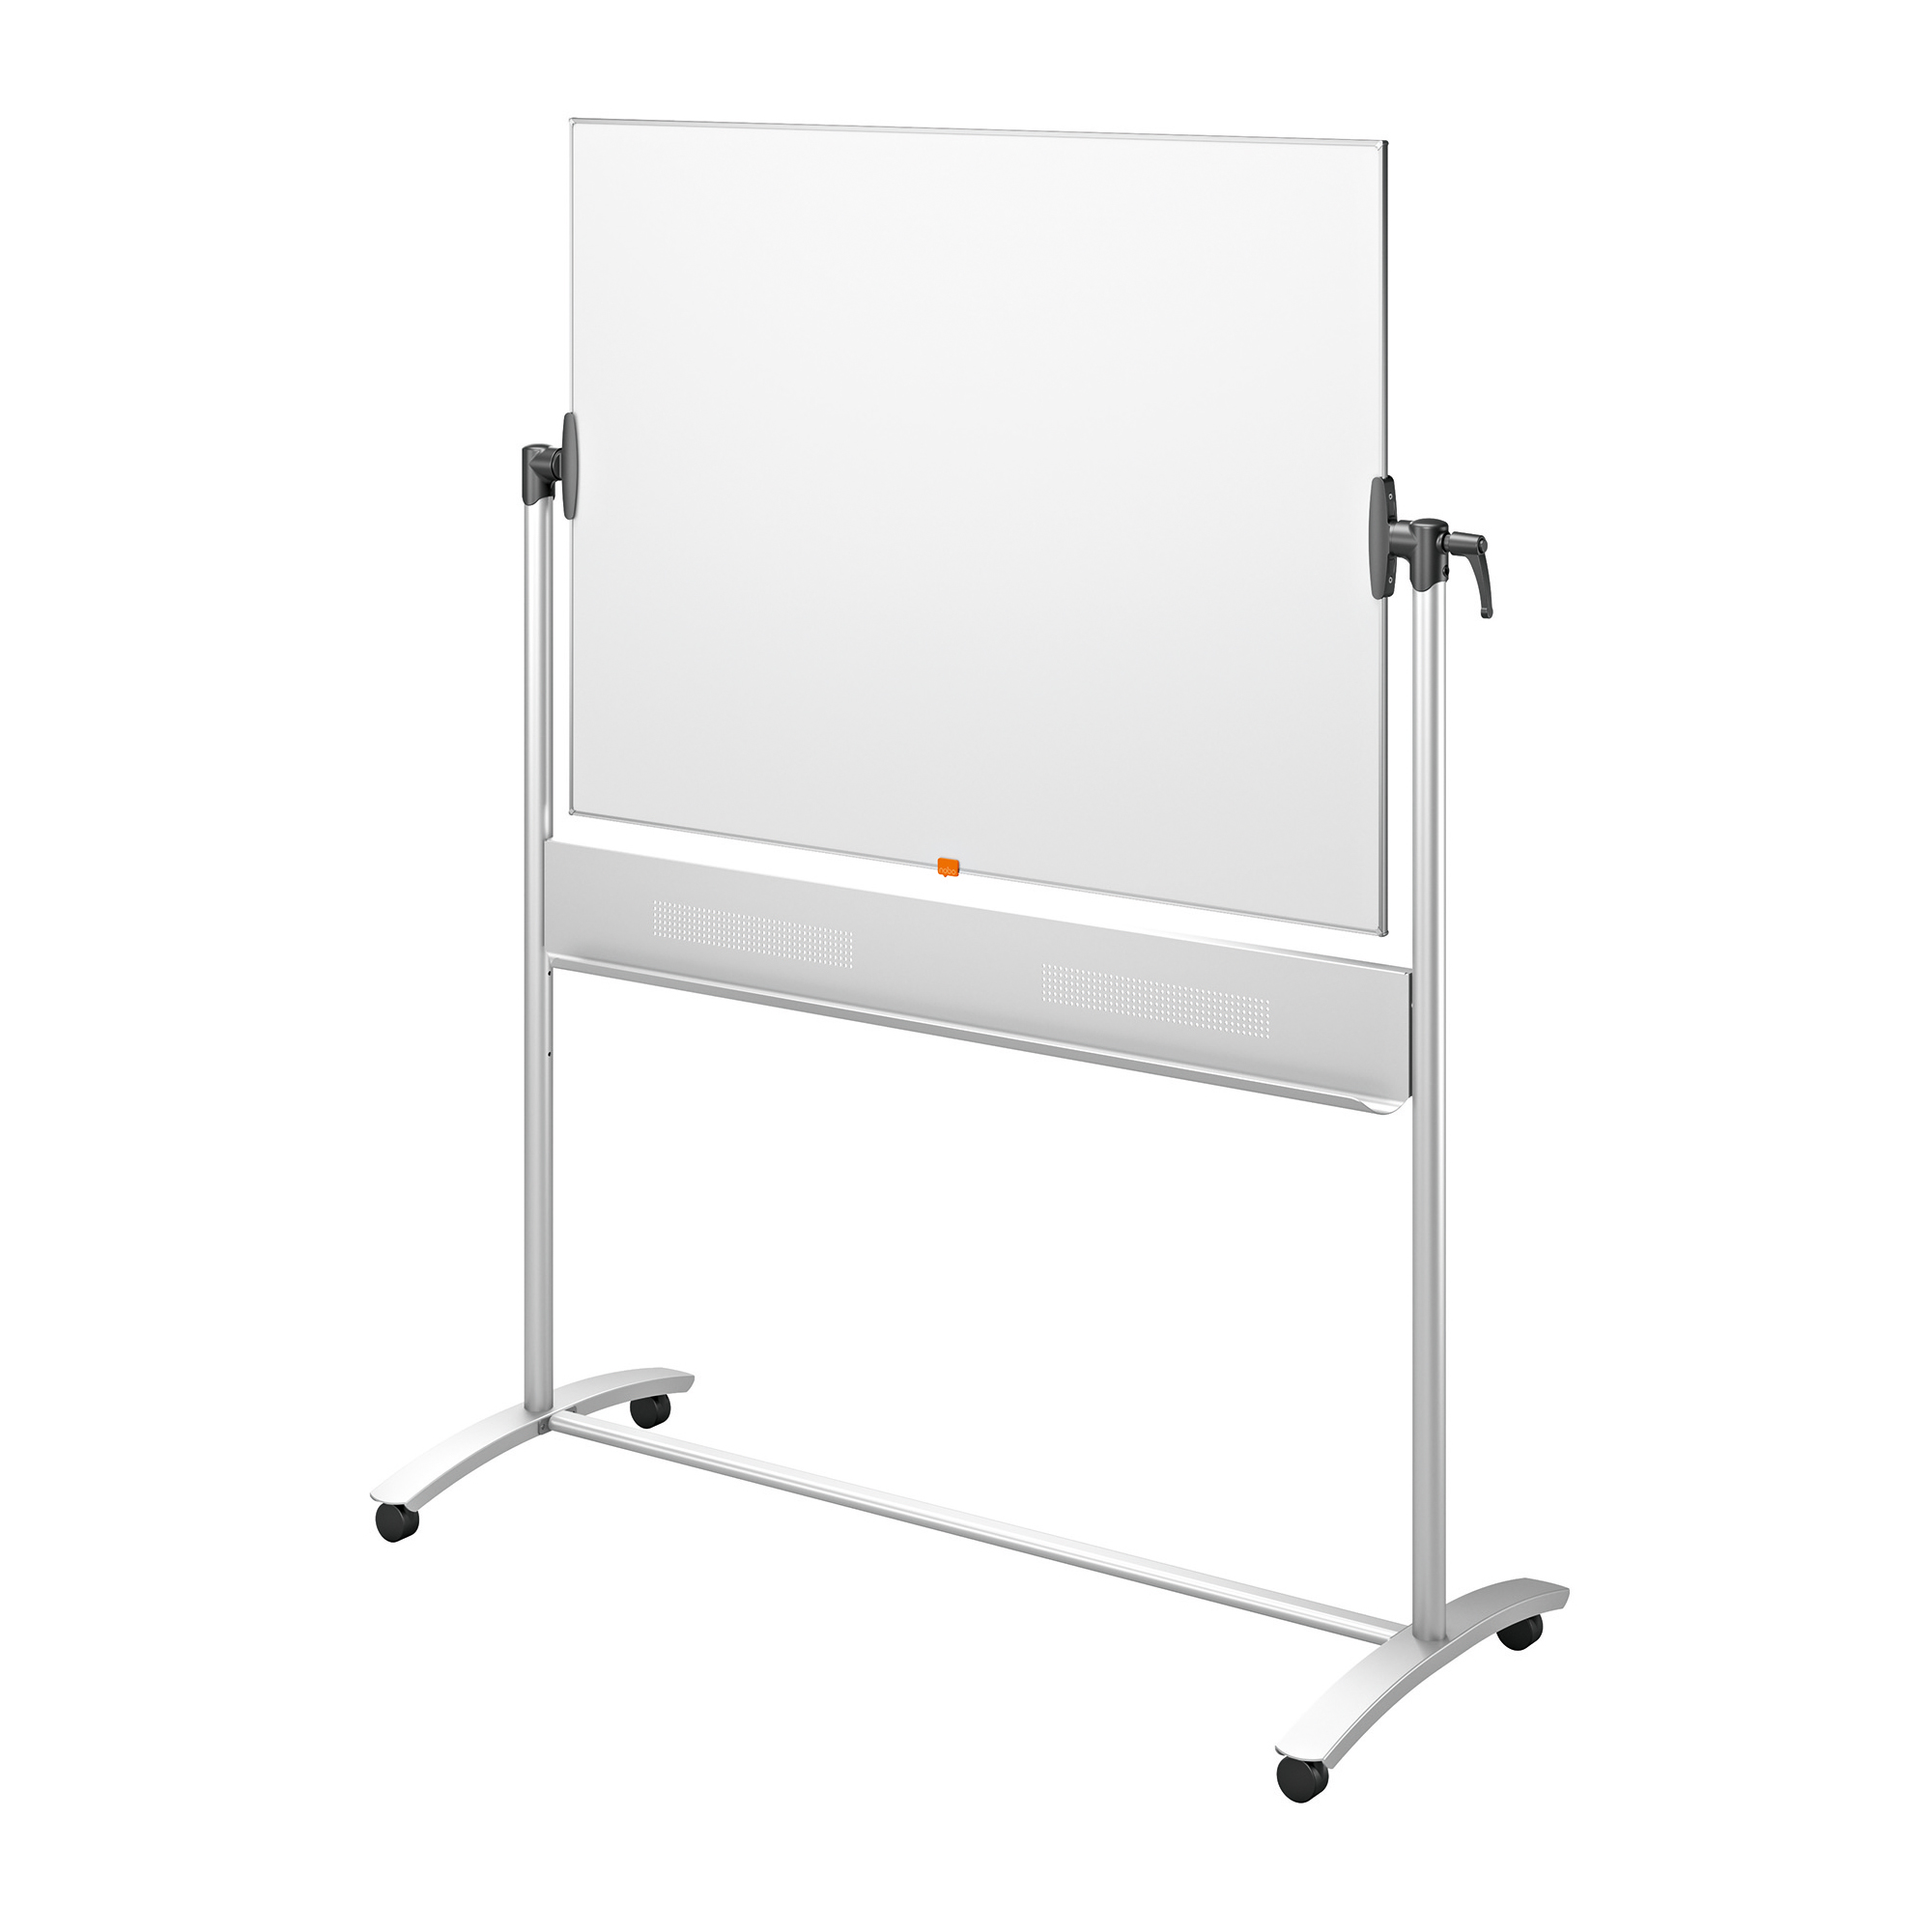 Nobo Prestige Enamel Mobile Board Dual Sided Magnetic W1200xH900mm Steel Grey Ref 1901033